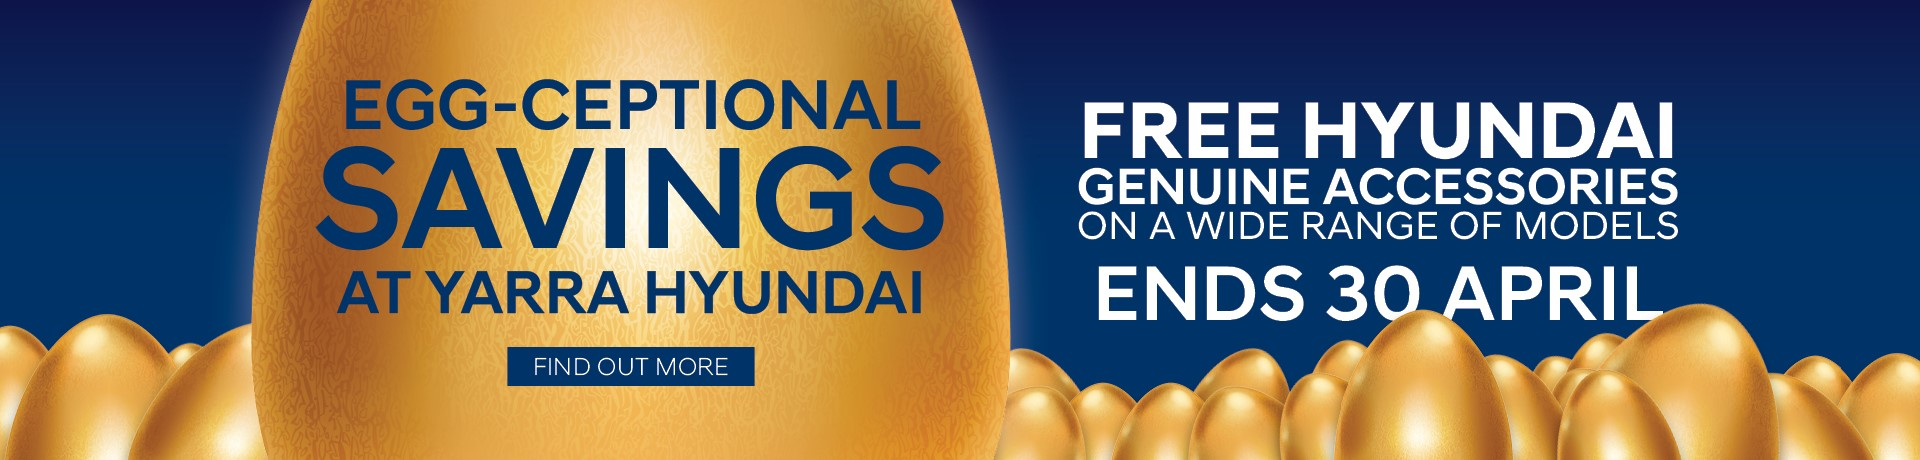 Egg-ceptional Savings at Yarra Hyundai this Easter. Free Hyundai Genuine Accessories on a wide range of models